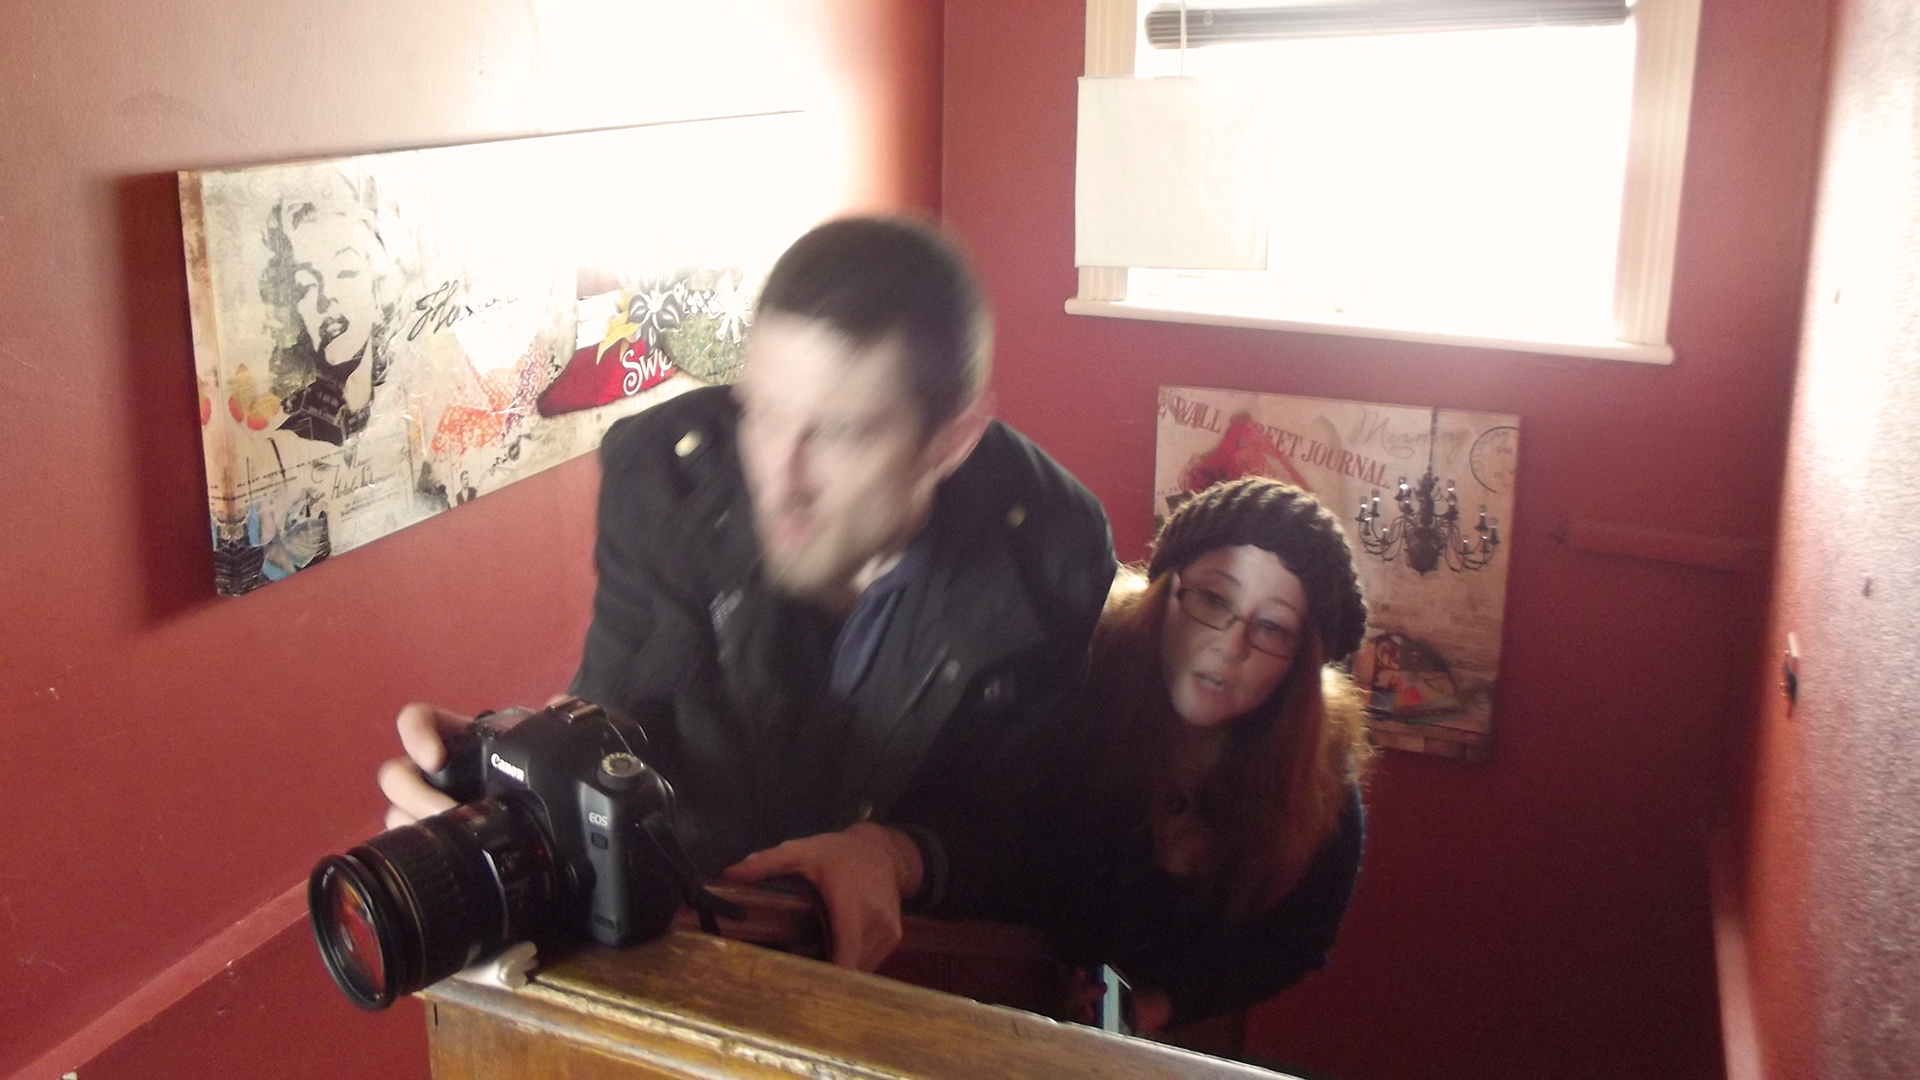 Shakespeare Republic - Director of Photography James Dene and Director Sally McLean